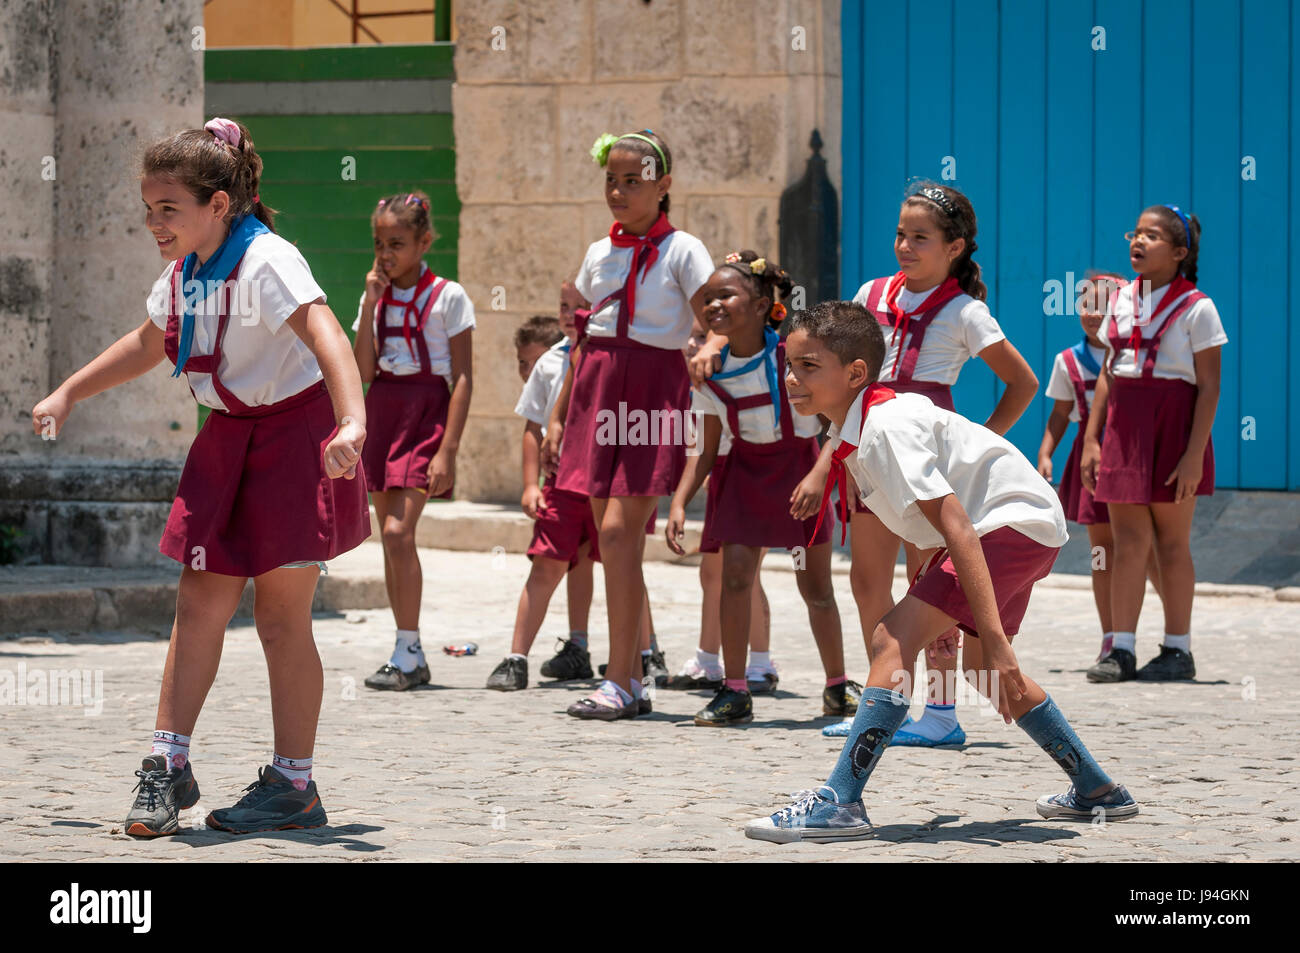 HAVANA - CIRCA JUNE, 2011: A group of school children play games on the cobblestones of a courtyard in the historic - Stock Image